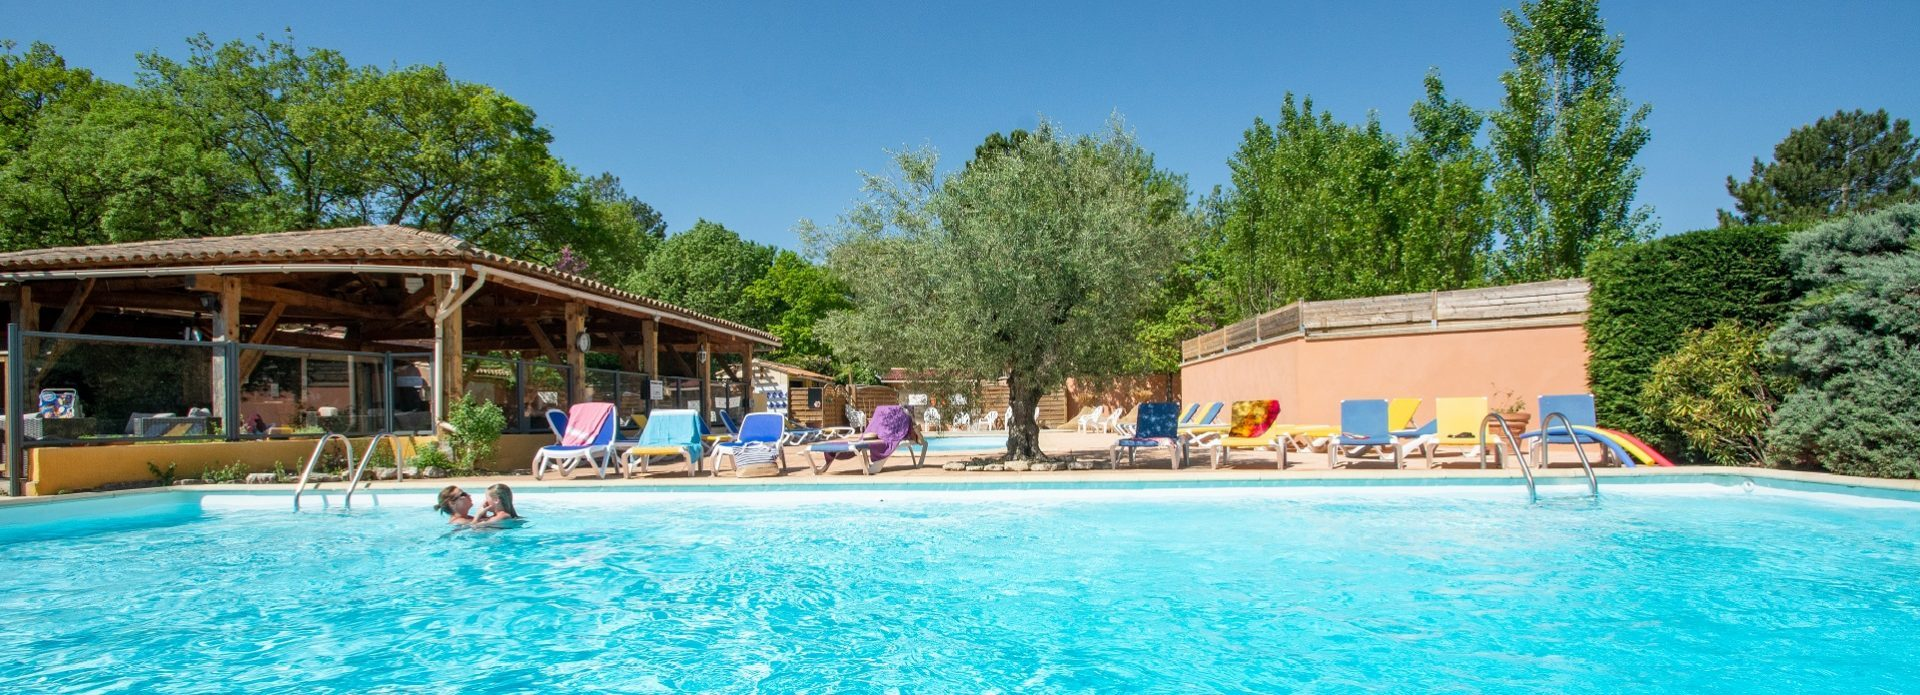 Camping Le Luberon : Dsc 8869accueil